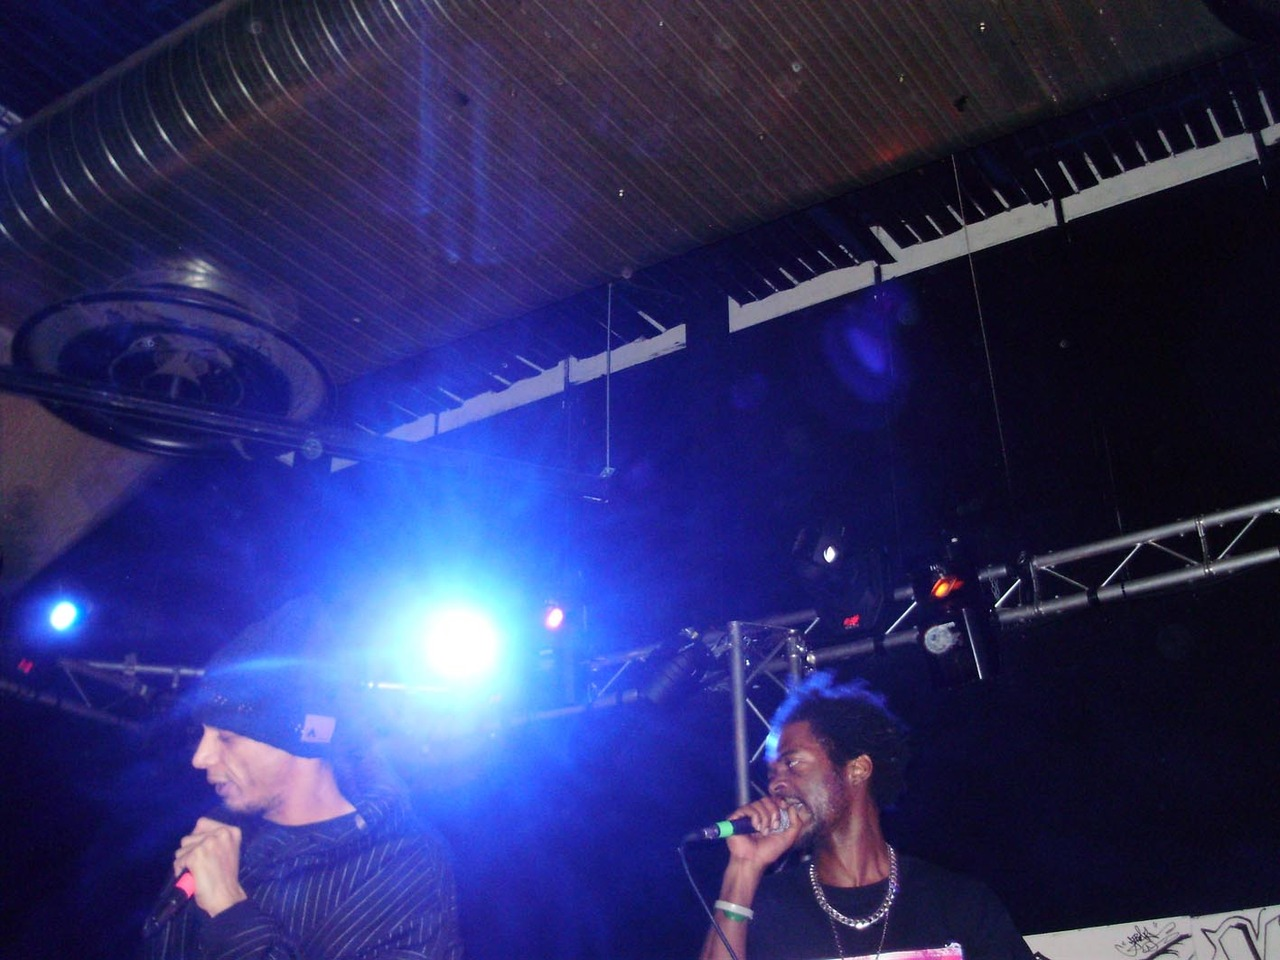 Support independent UK Hip-Hop: Idel Hands presents Phi-Life Cypher. Bucks New Uni. HW..last Thrus. Where were you?